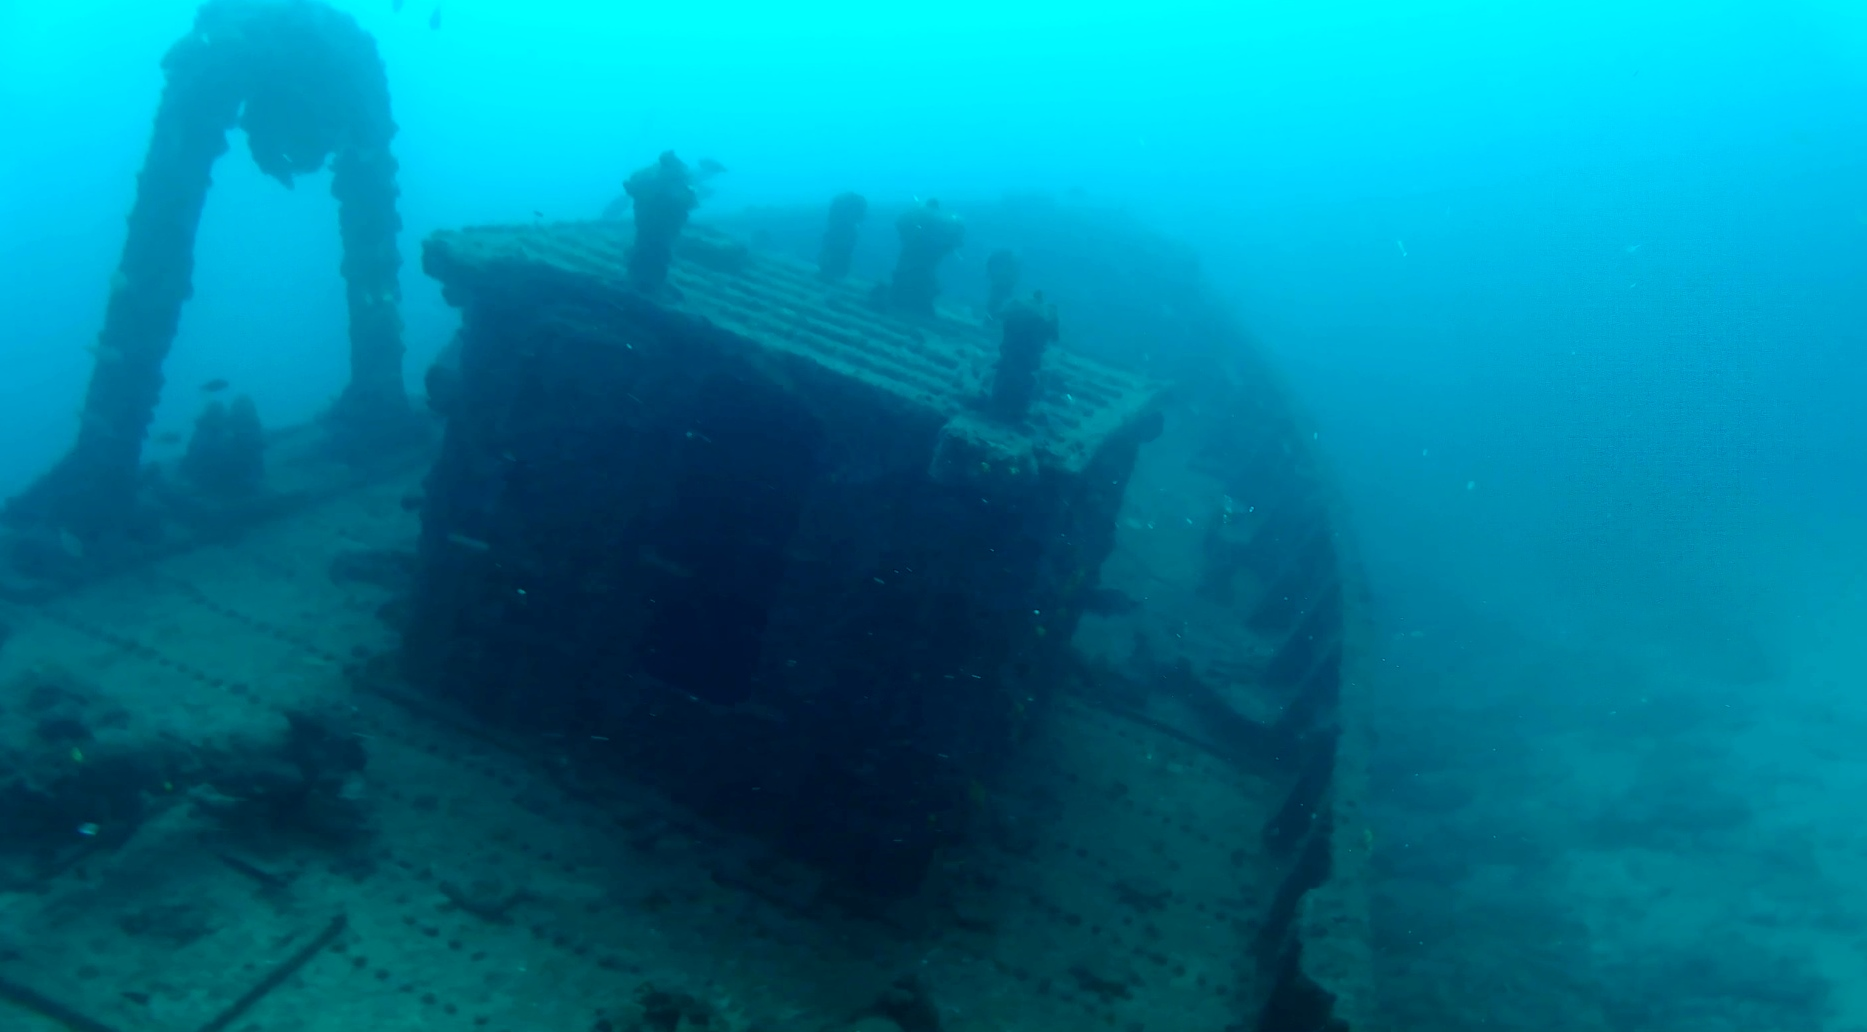 """Relitto Nave """"Kwarcit"""" O """"Boris"""" Intotheblue.it"""